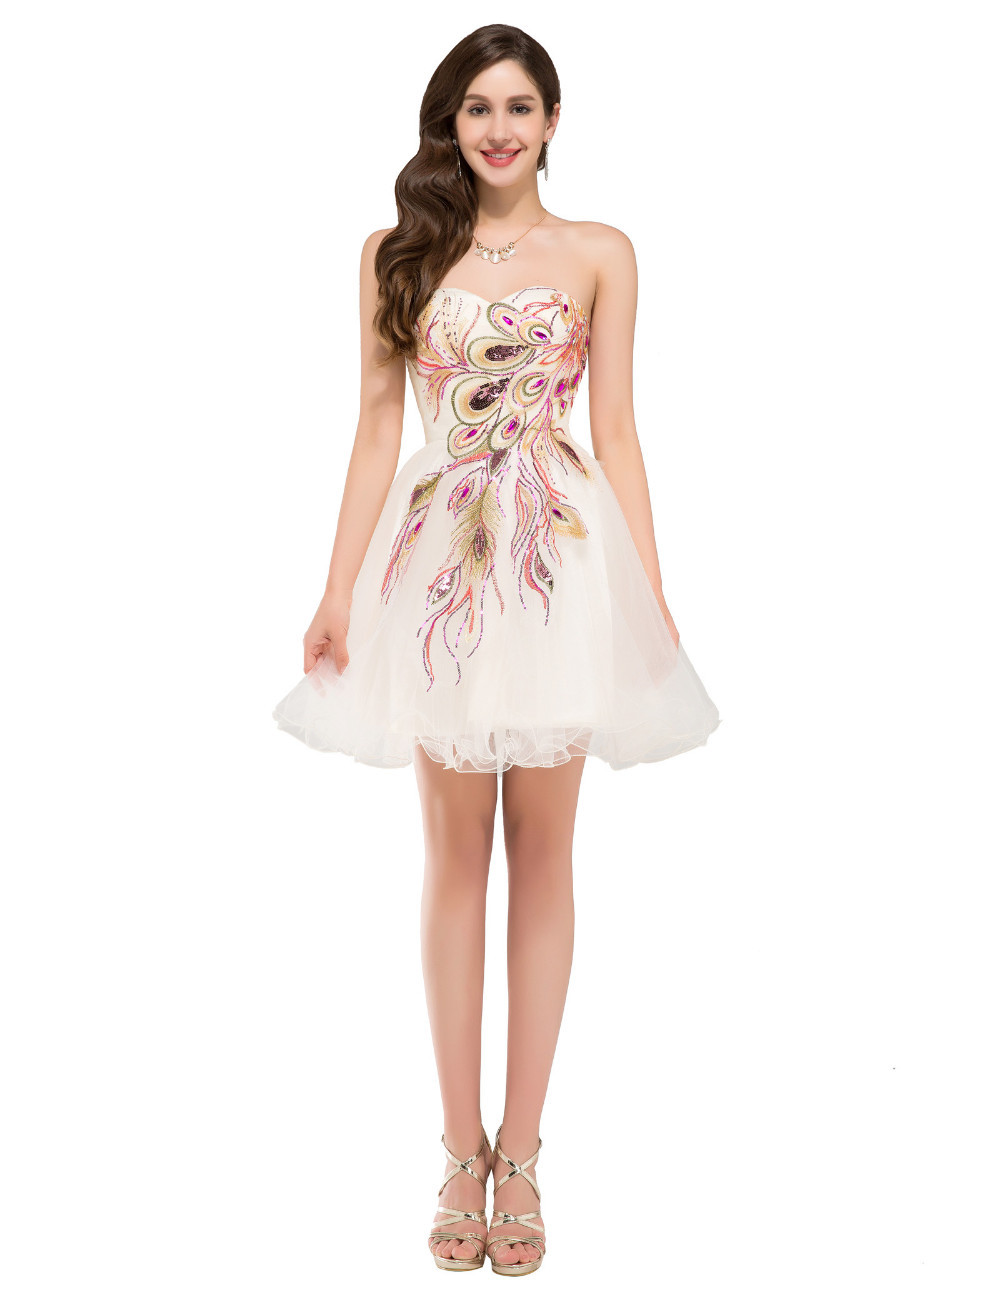 Off Shoulder Tule Short Homecoming Dress With Embridery Peacoclk Mini Cocktail Gowns , Homecoming Gowns